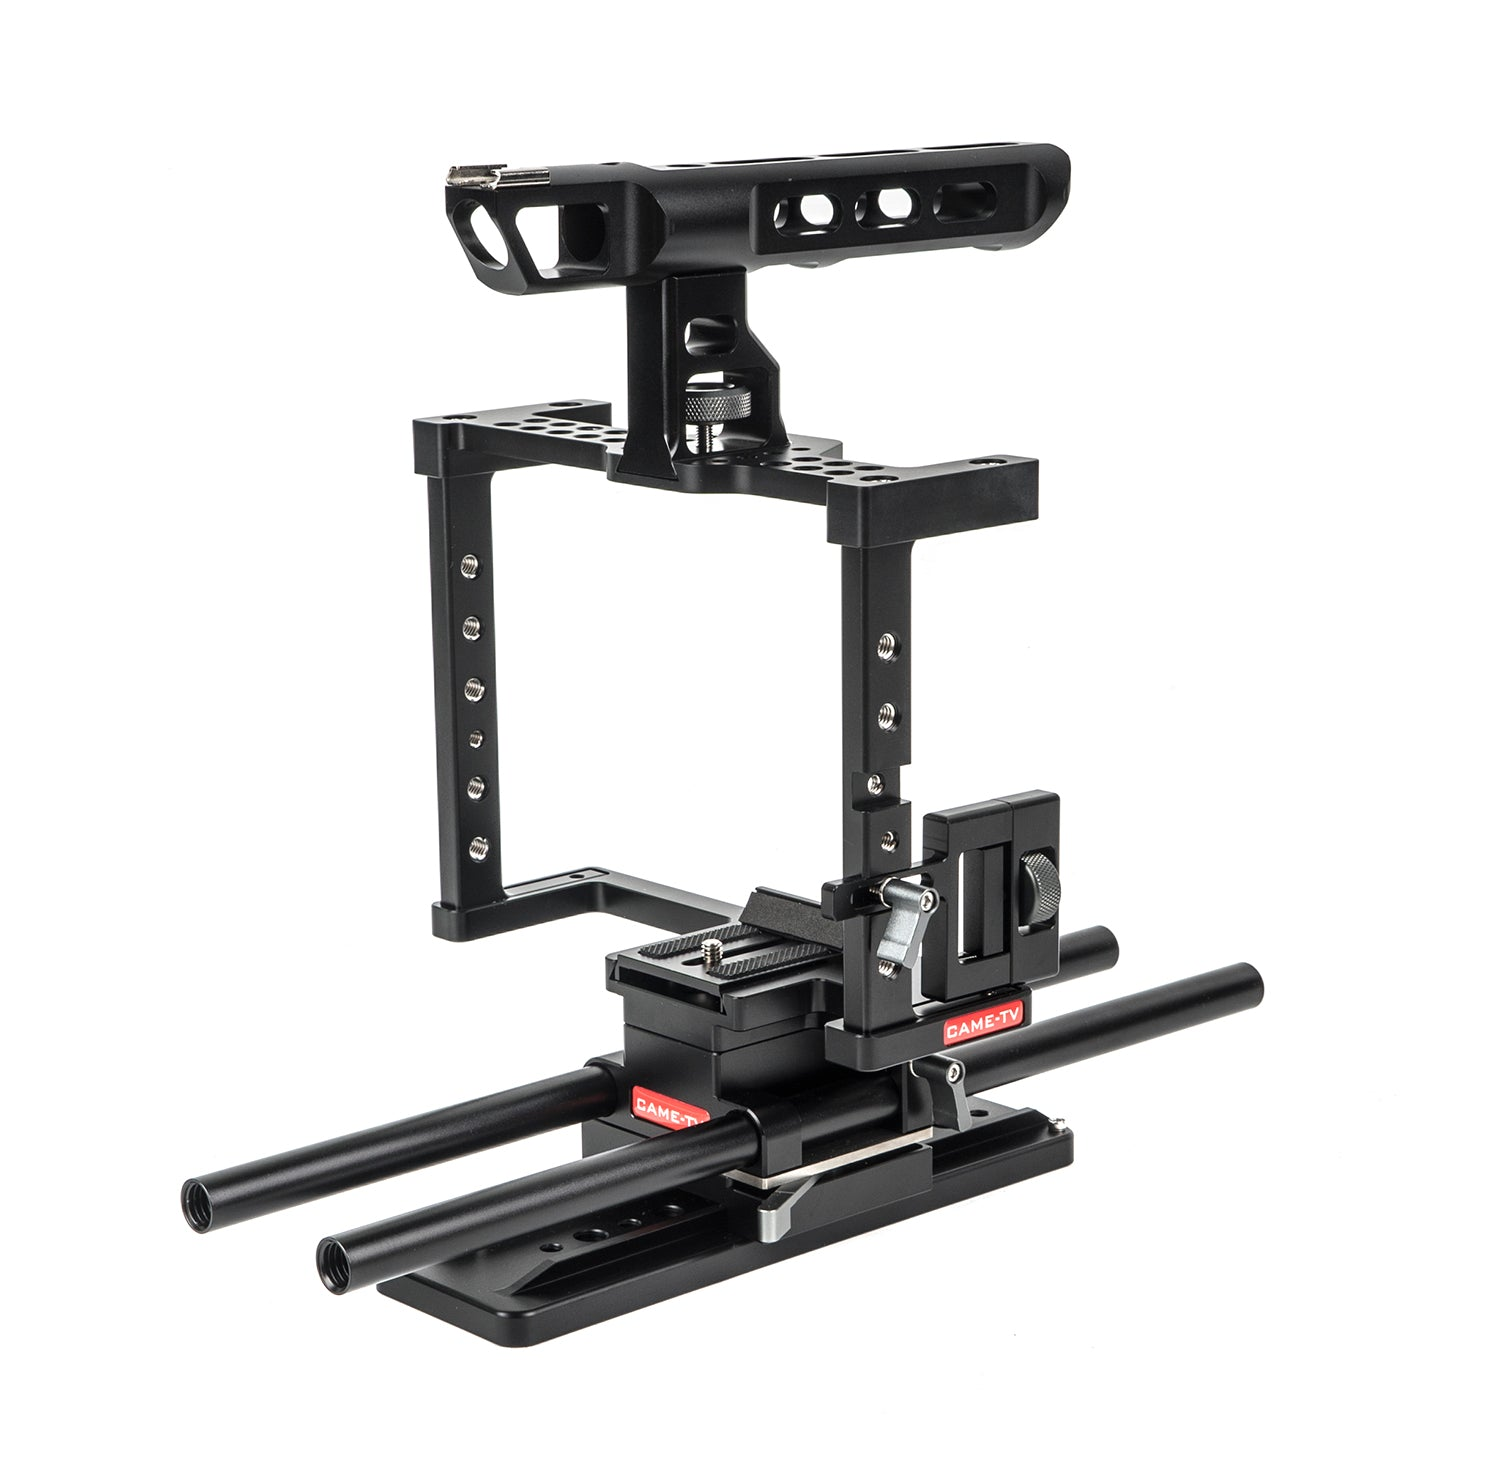 CAME-TV DSLR Cage Rigs For GH4 & SONY A7s & 5D Mark III